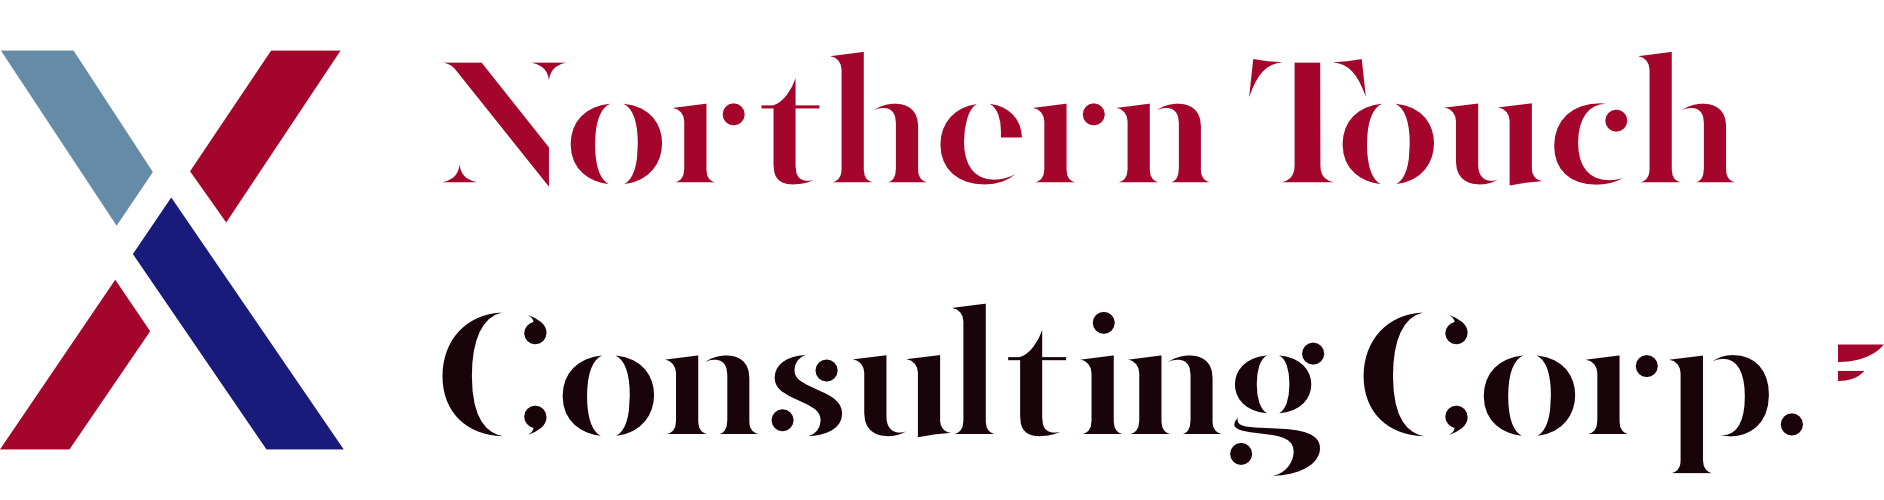 X - Northern Touch Consulting Corp.